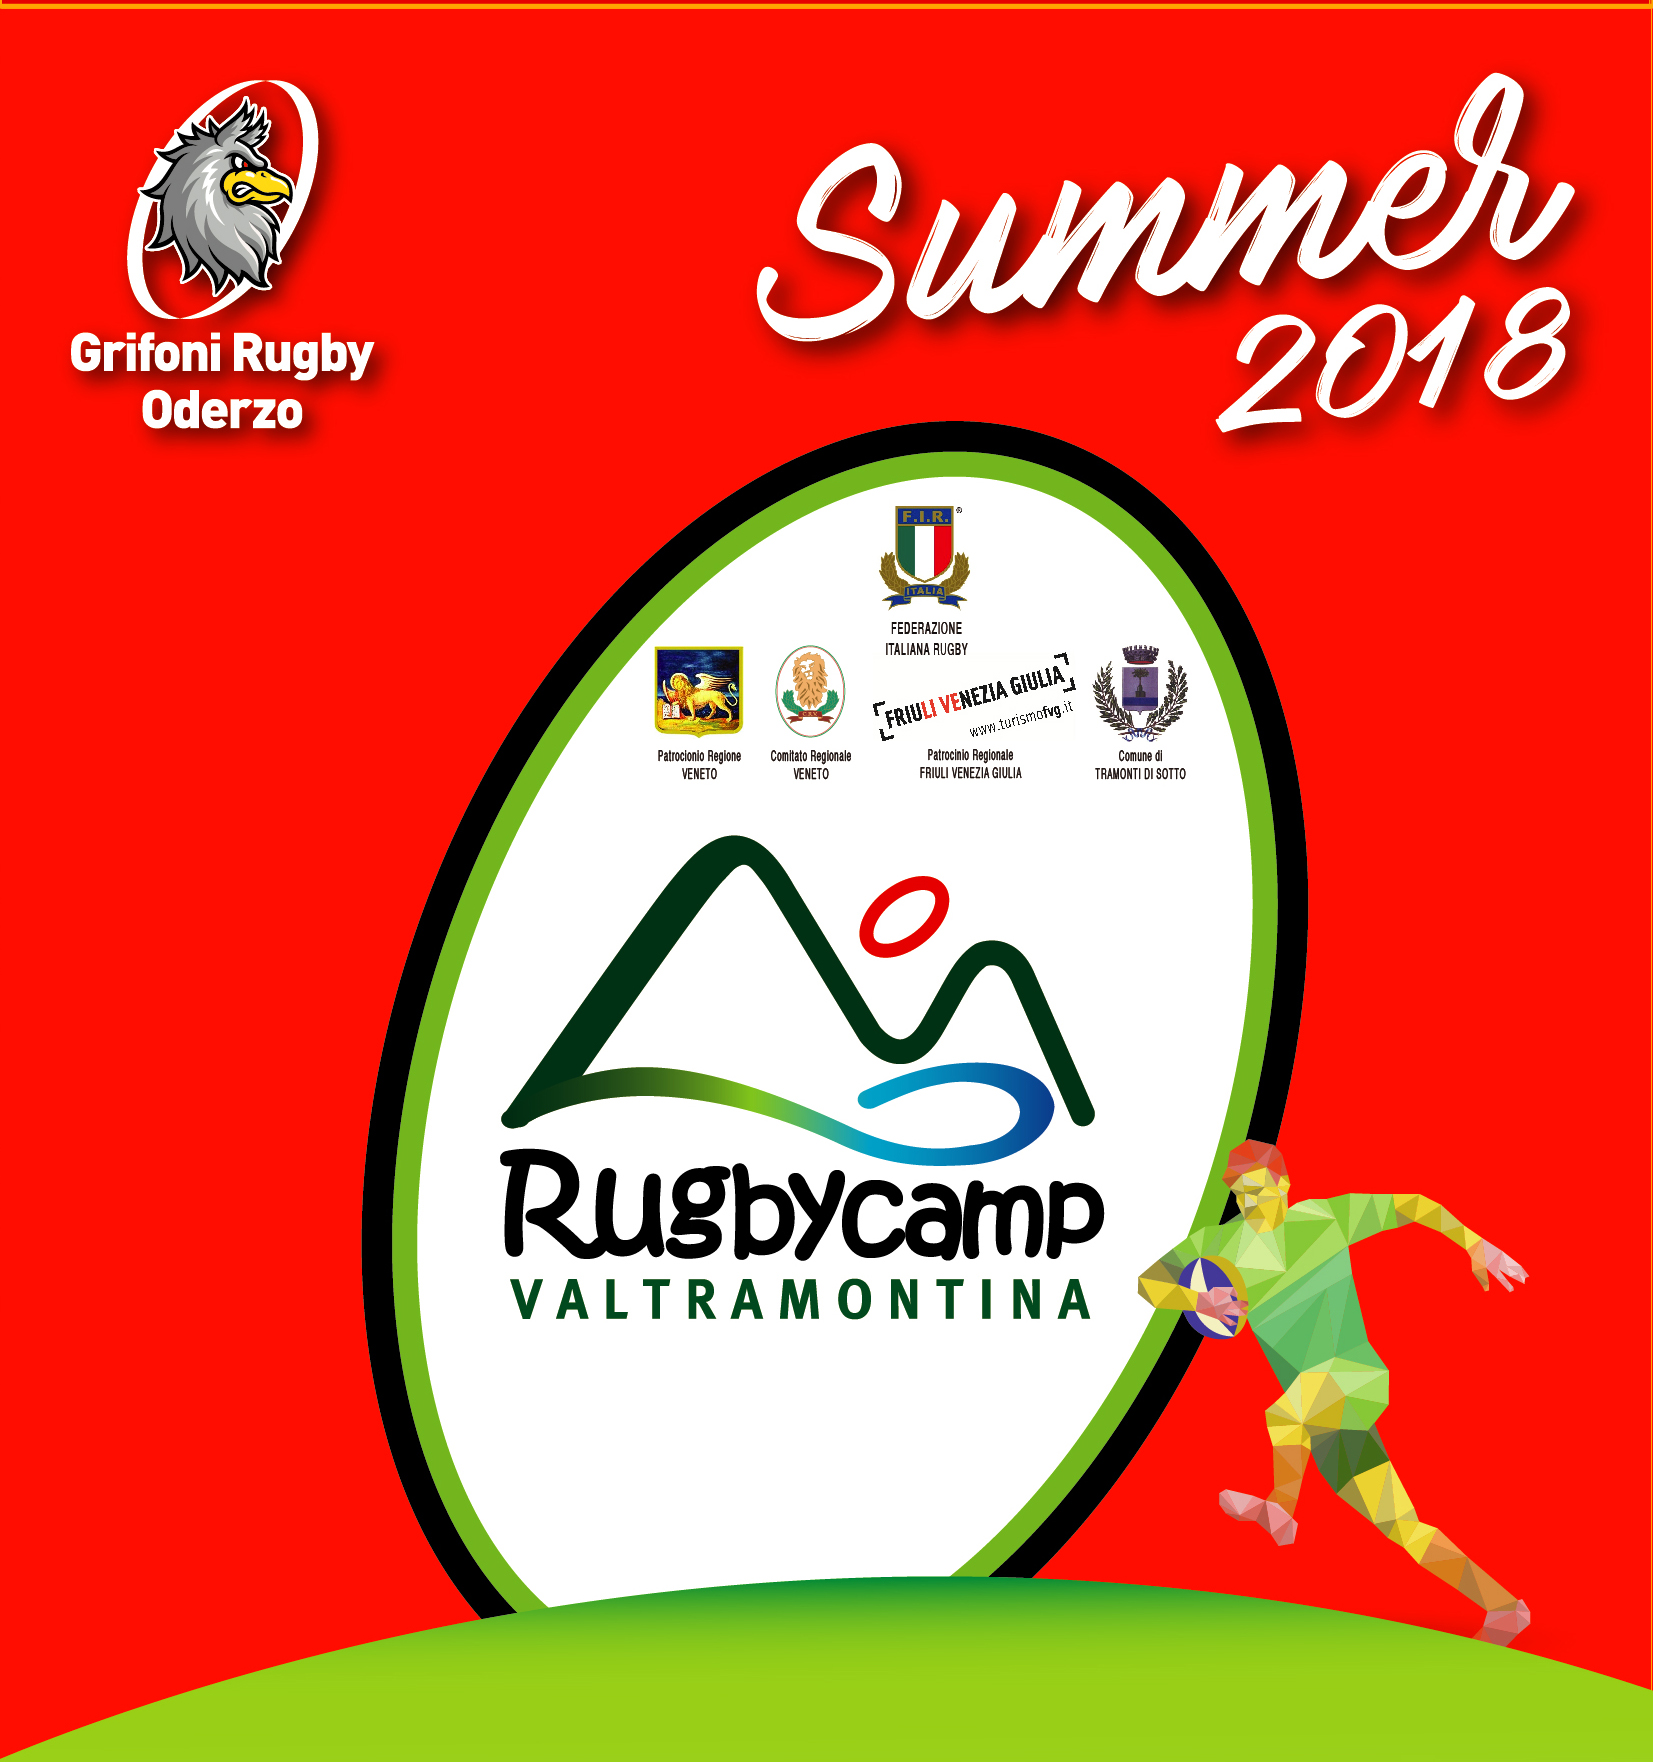 Rugby Camp 2018